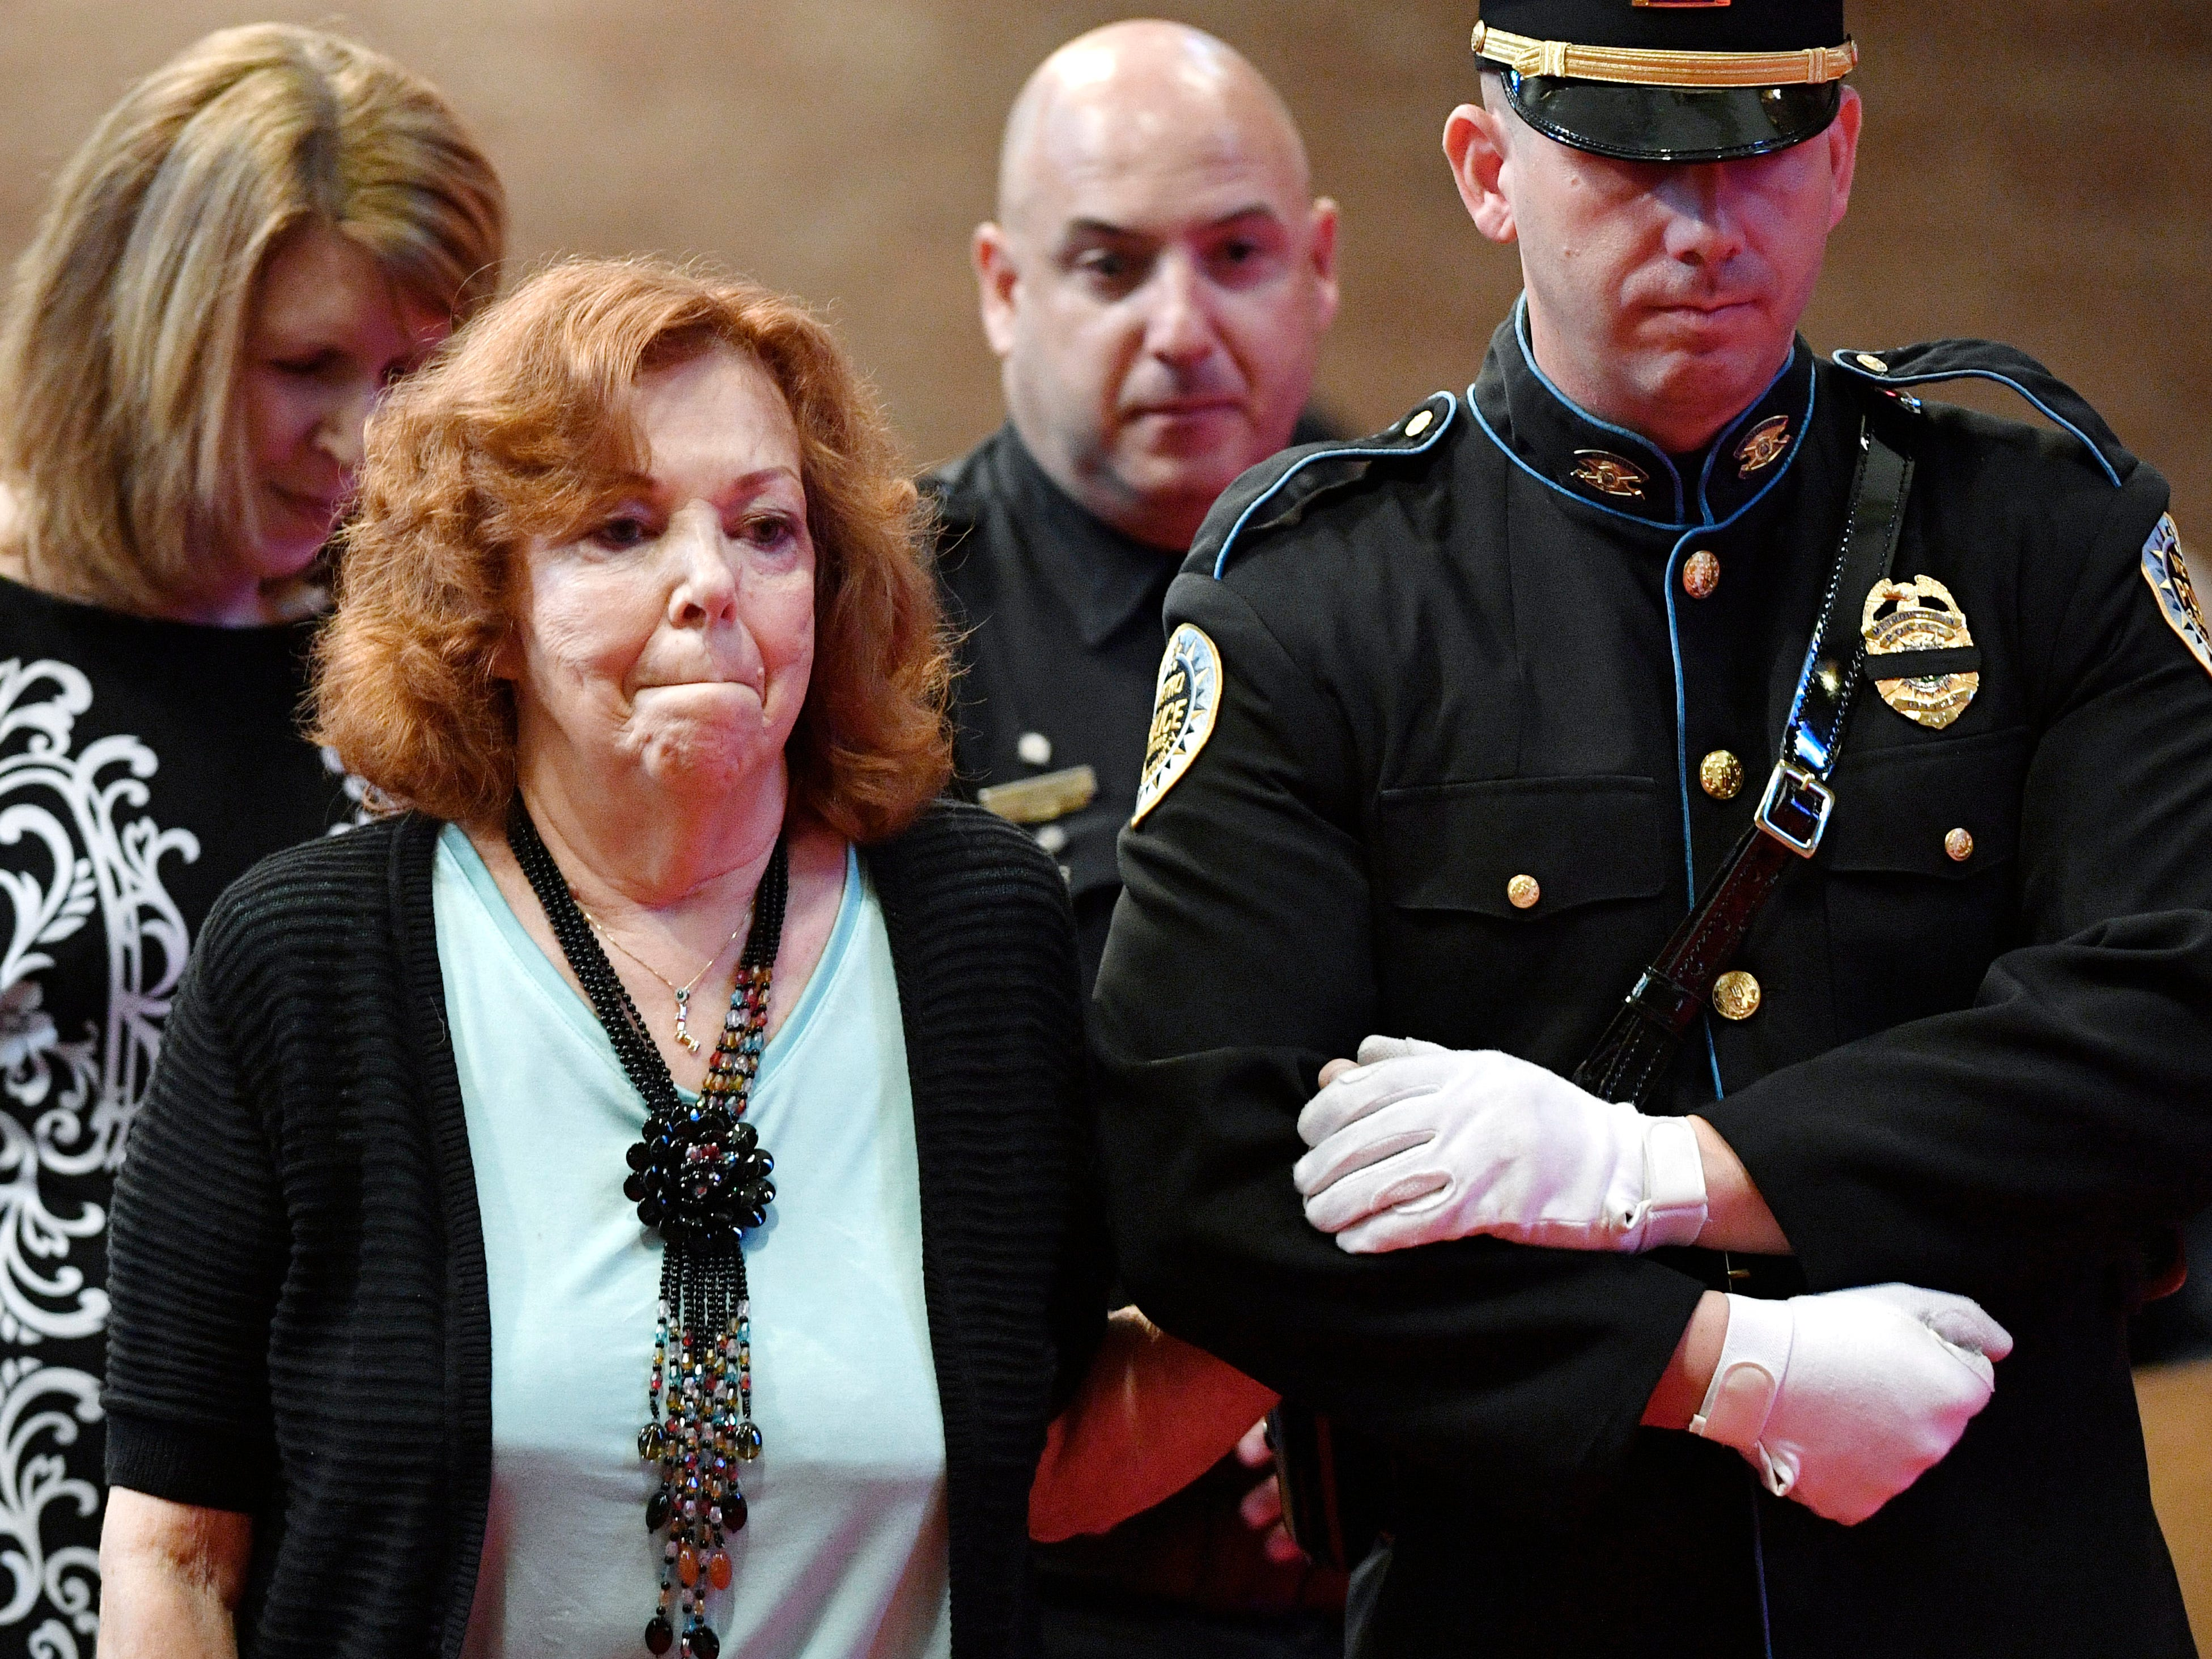 Esther Connell, mother of Eric Mumaw who died in 2017, is escorted to the front to lay a yellow rose beside the photo of her son at the annual memorial service honoring Nashville's police officers who have died in service to the city Thursday, May 9, 2019, in Nashville, Tenn.